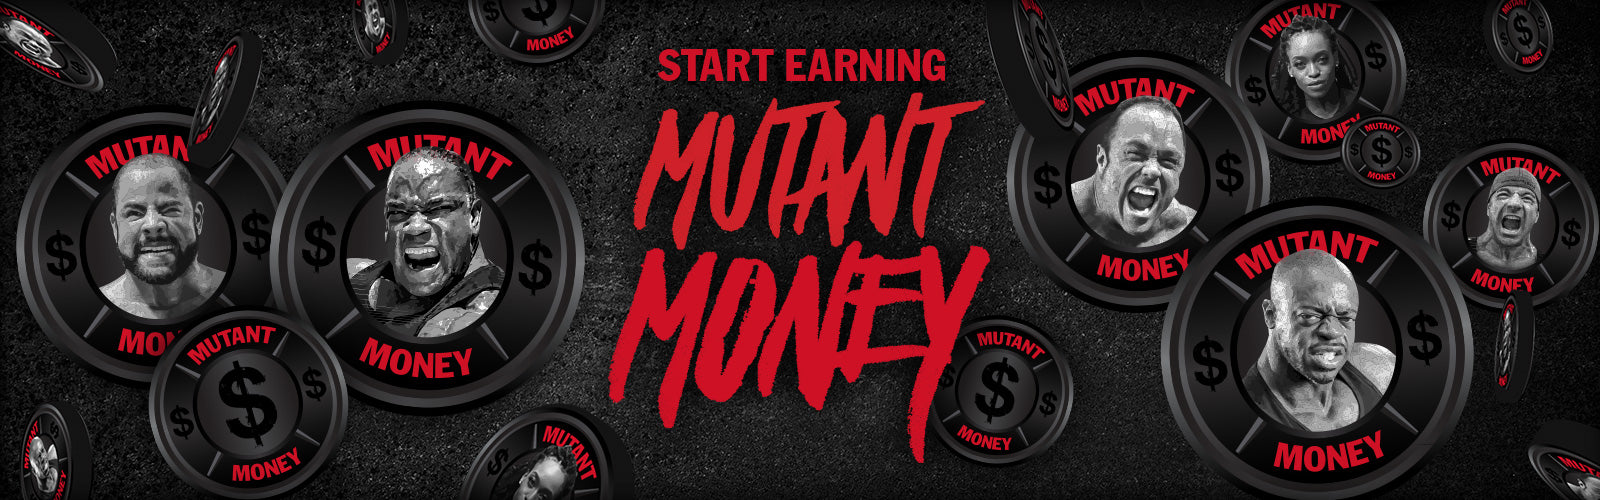 Start earning Mutant money